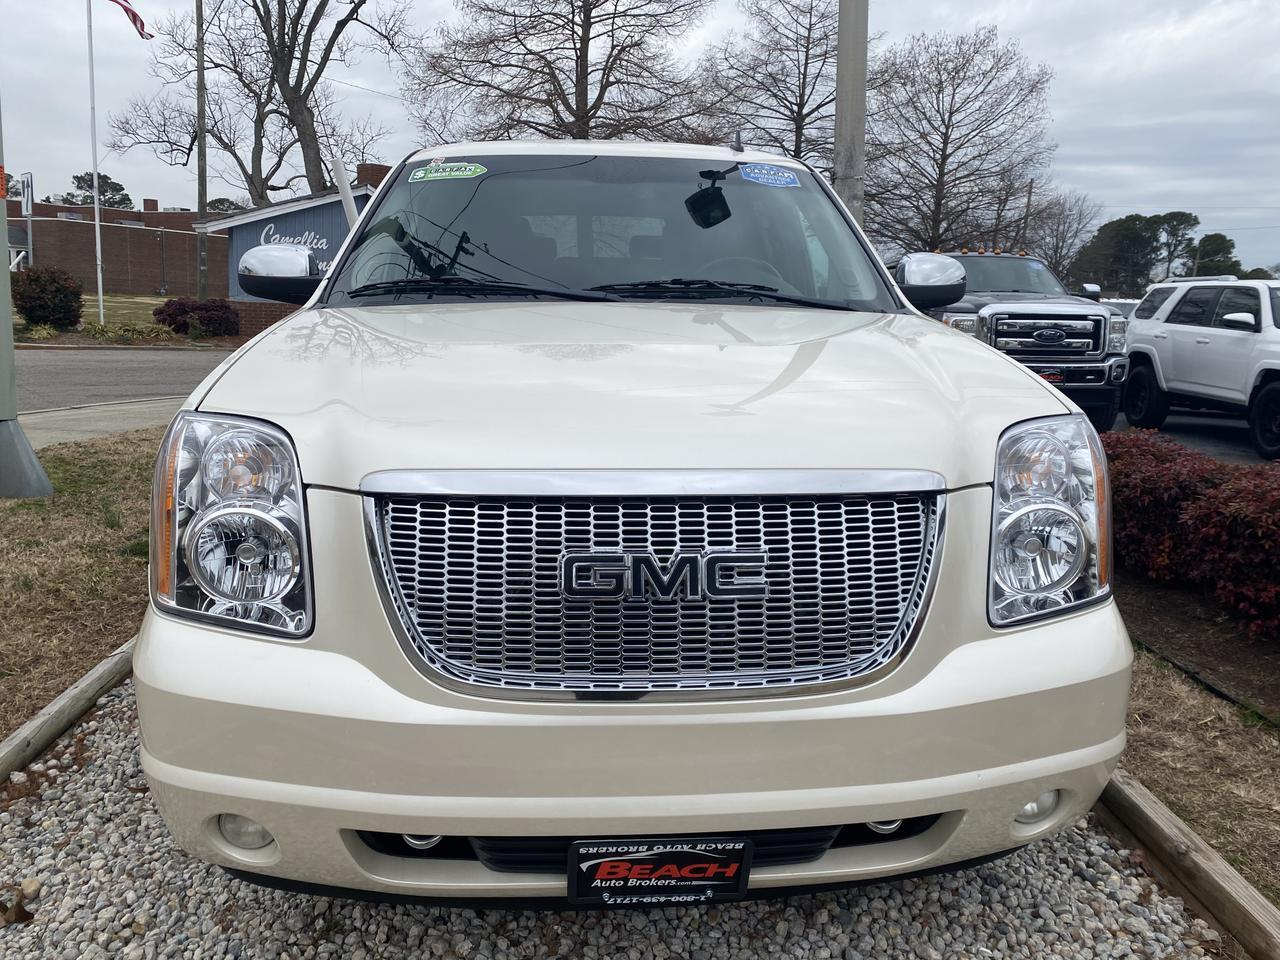 2011 GMC YUKON XL SLT 4X4, WARRANTY, LEATHER, NAV, HEATED/COOLED SEATS, BACKUP CAM, PARKING SENSORS,  3RD ROW! Norfolk VA